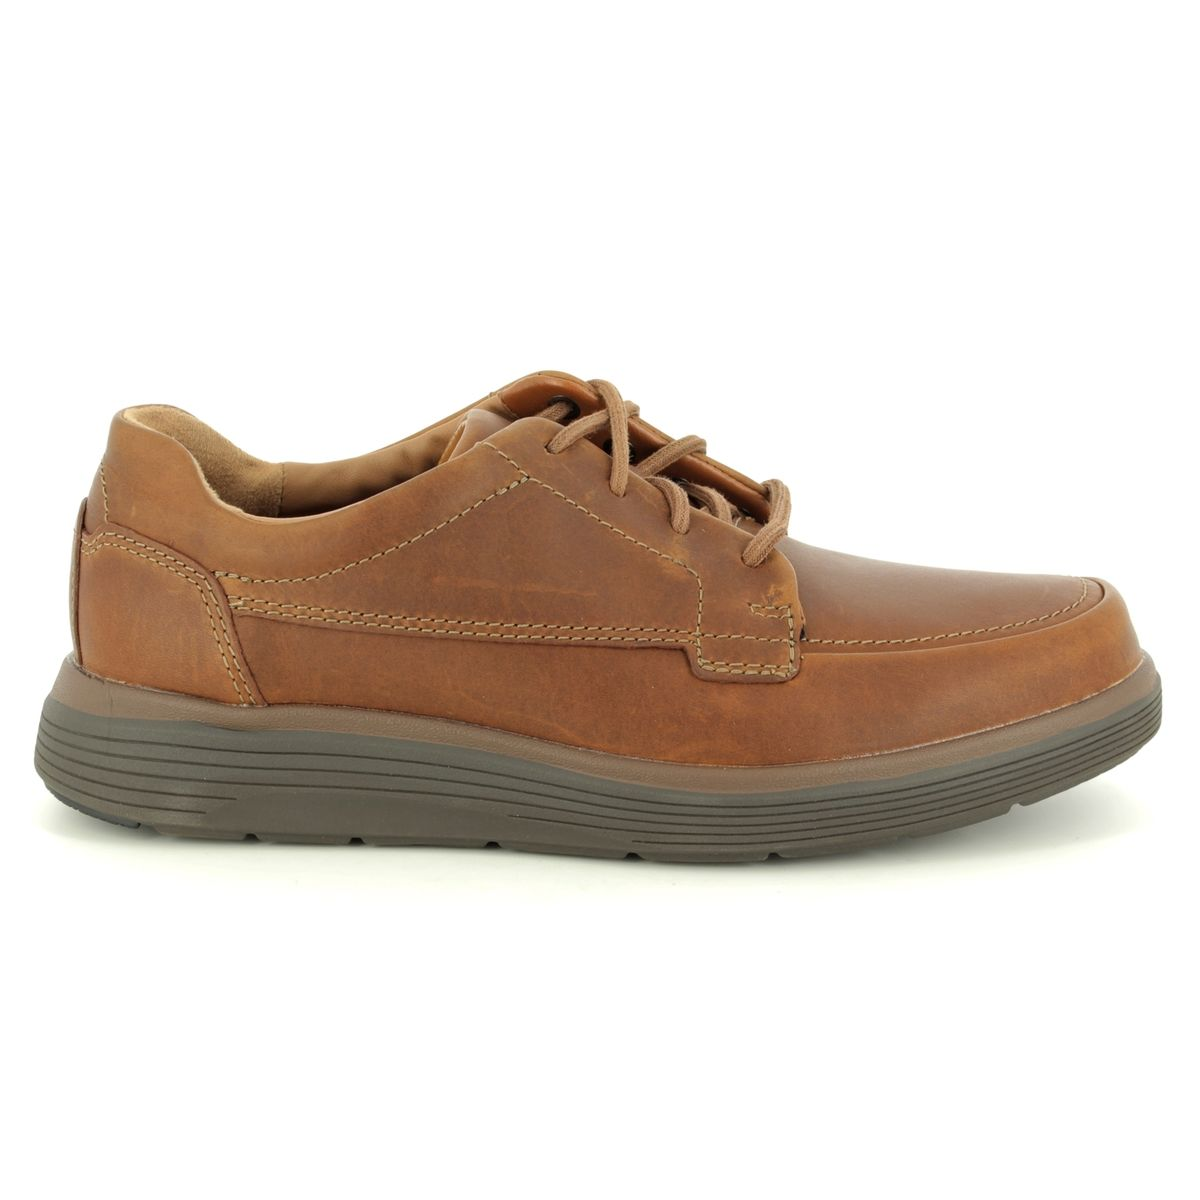 0adc78e81f3 Clarks Casual Shoes - Tan Leather - 3698 28H UN ABODE EASE